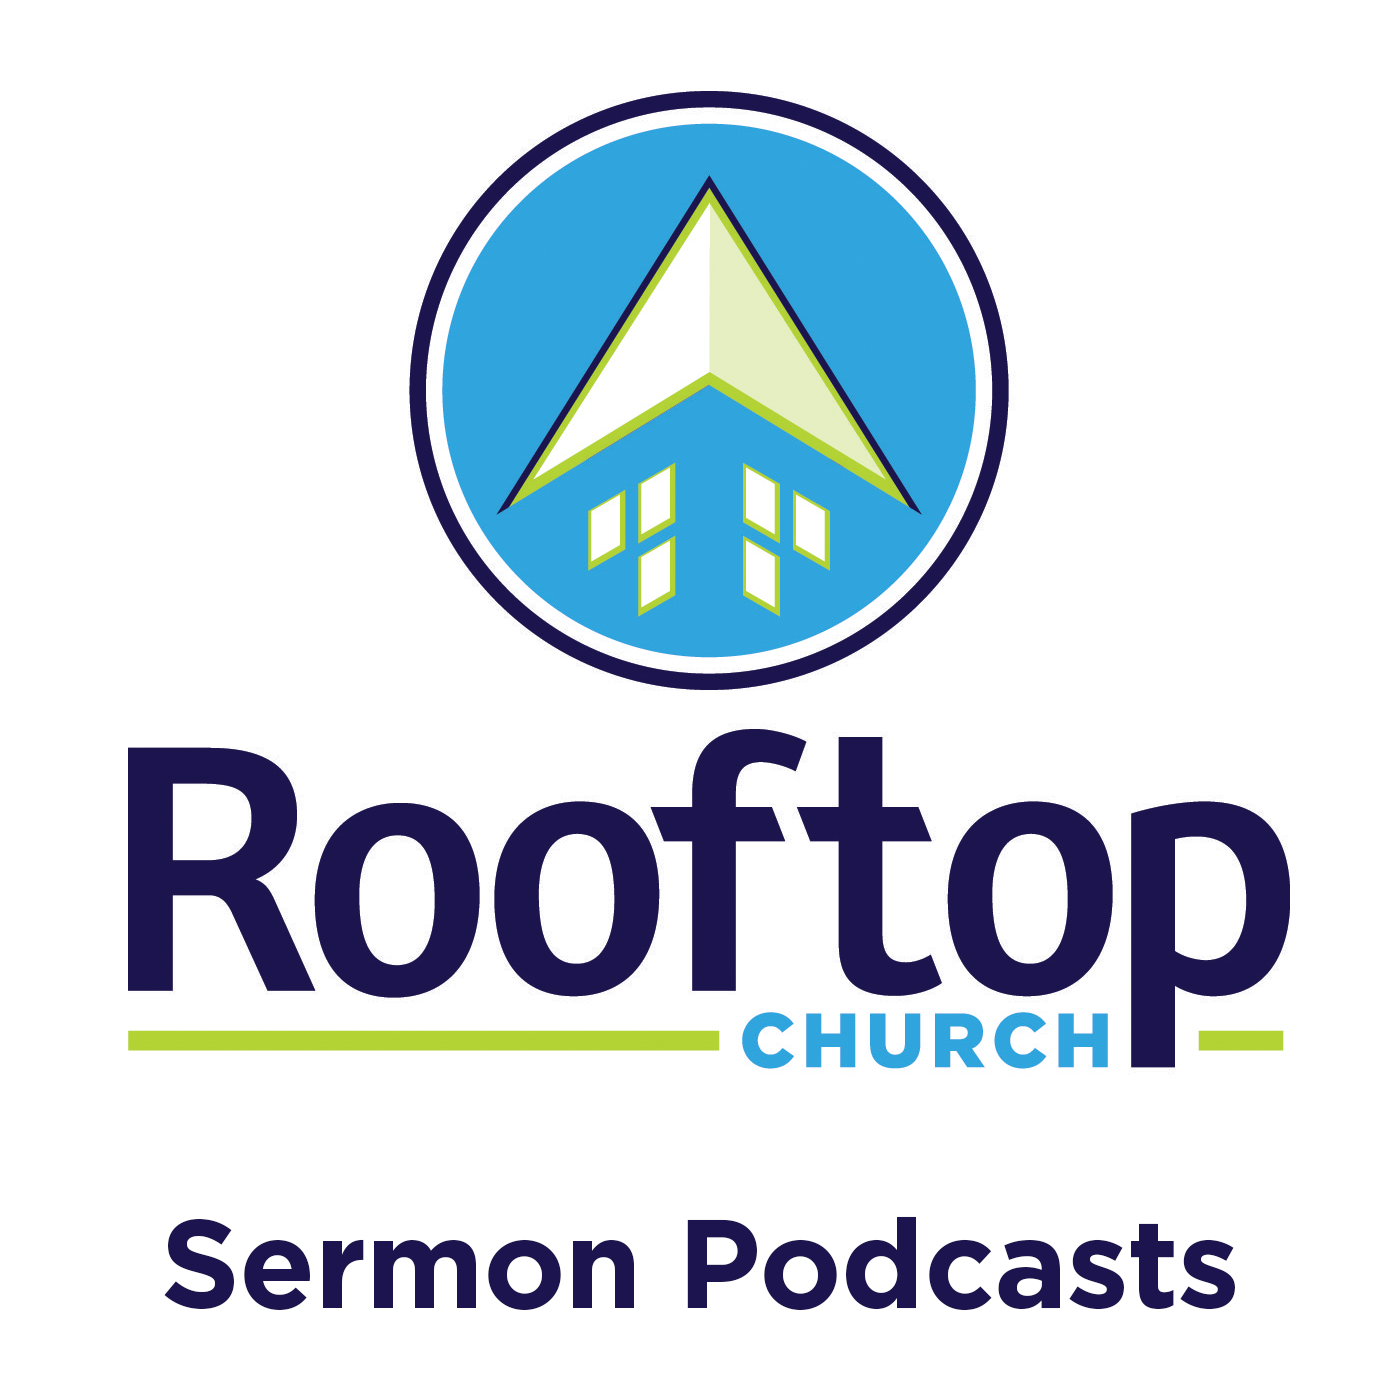 Sermons - Rooftop Church